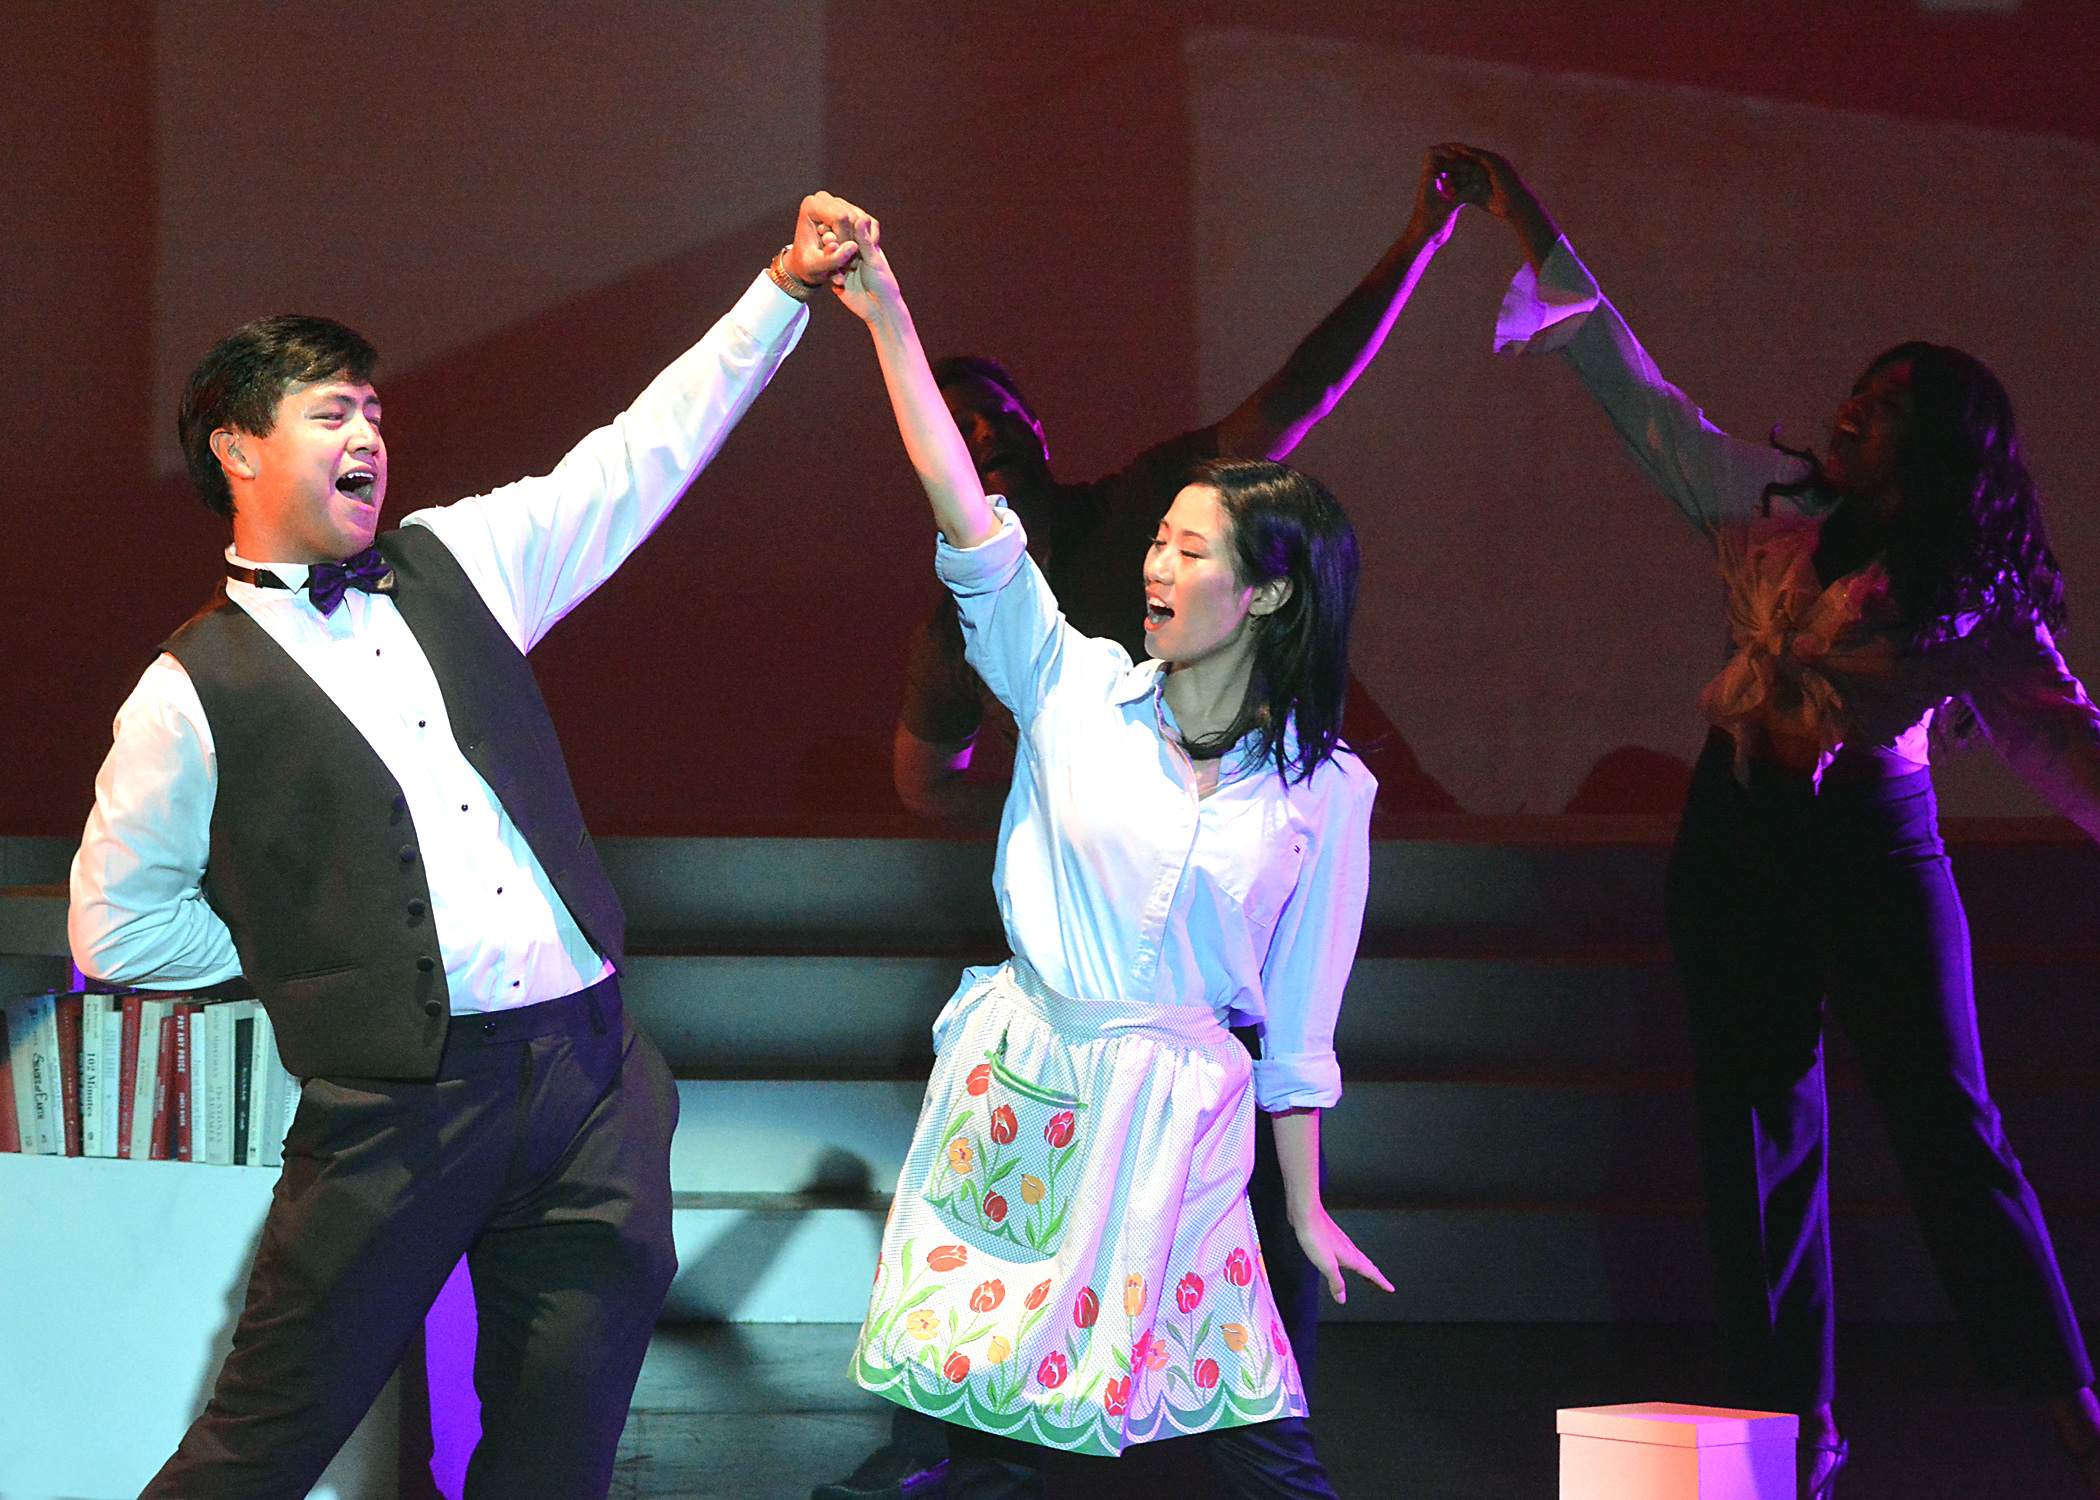 Dancing scene from musical